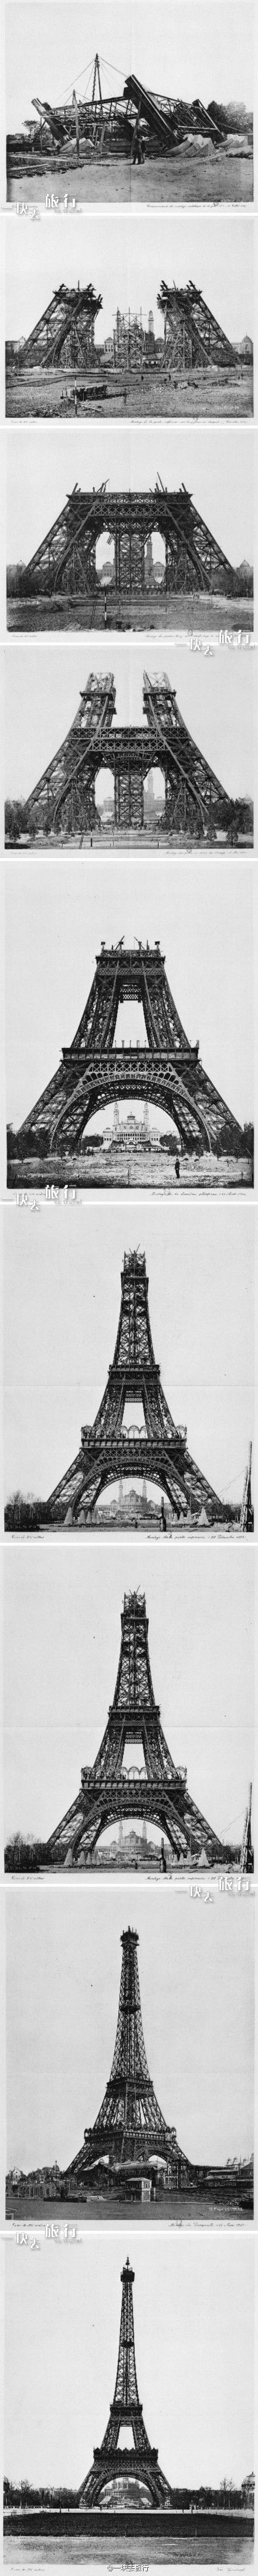 The building of the Eifel Tower. I don't usually pin long pictures like this but this one is so cool. Thanks for your support.